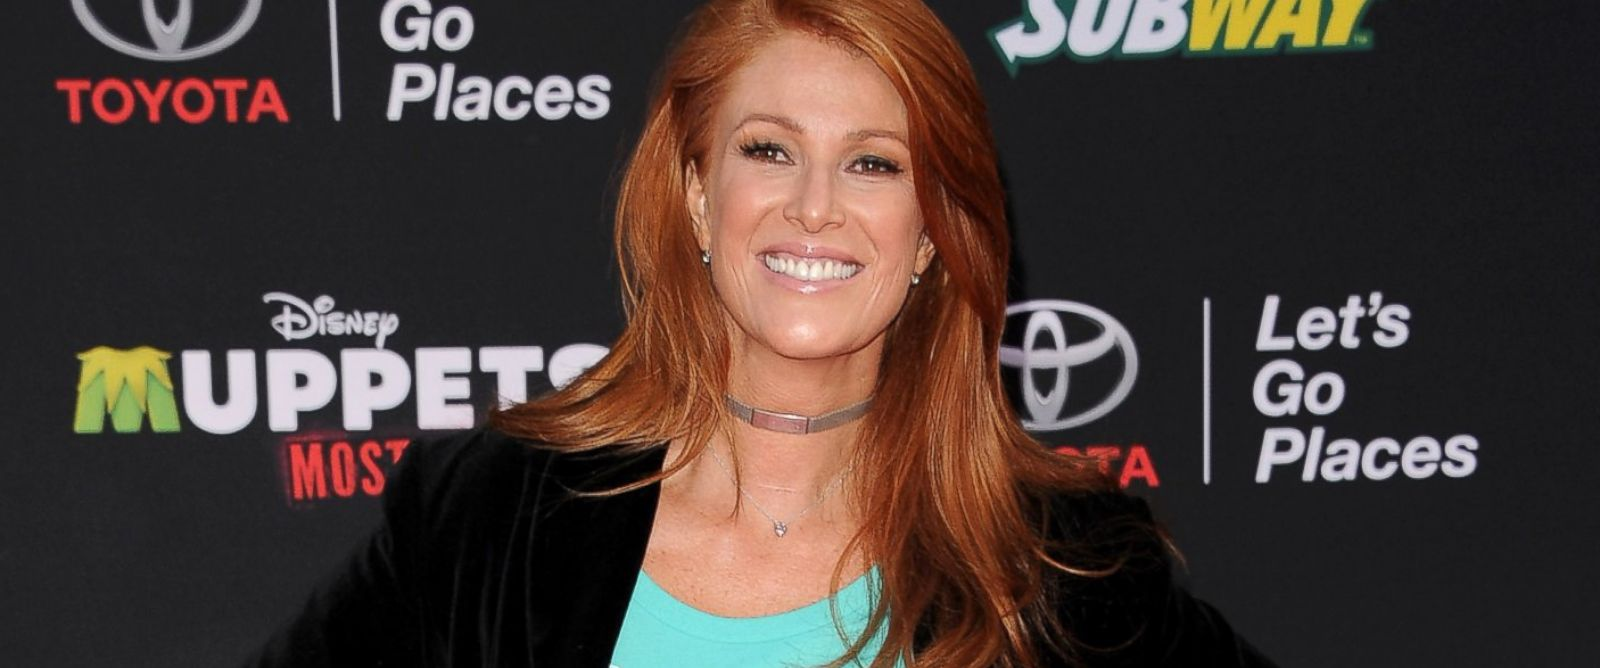 PHOTO: Angie Everhart arrives at the Los Angeles premiere of Muppets Most Wanted at the El Capitan Theatre, March 11, 2014, in Hollywood, Calif.